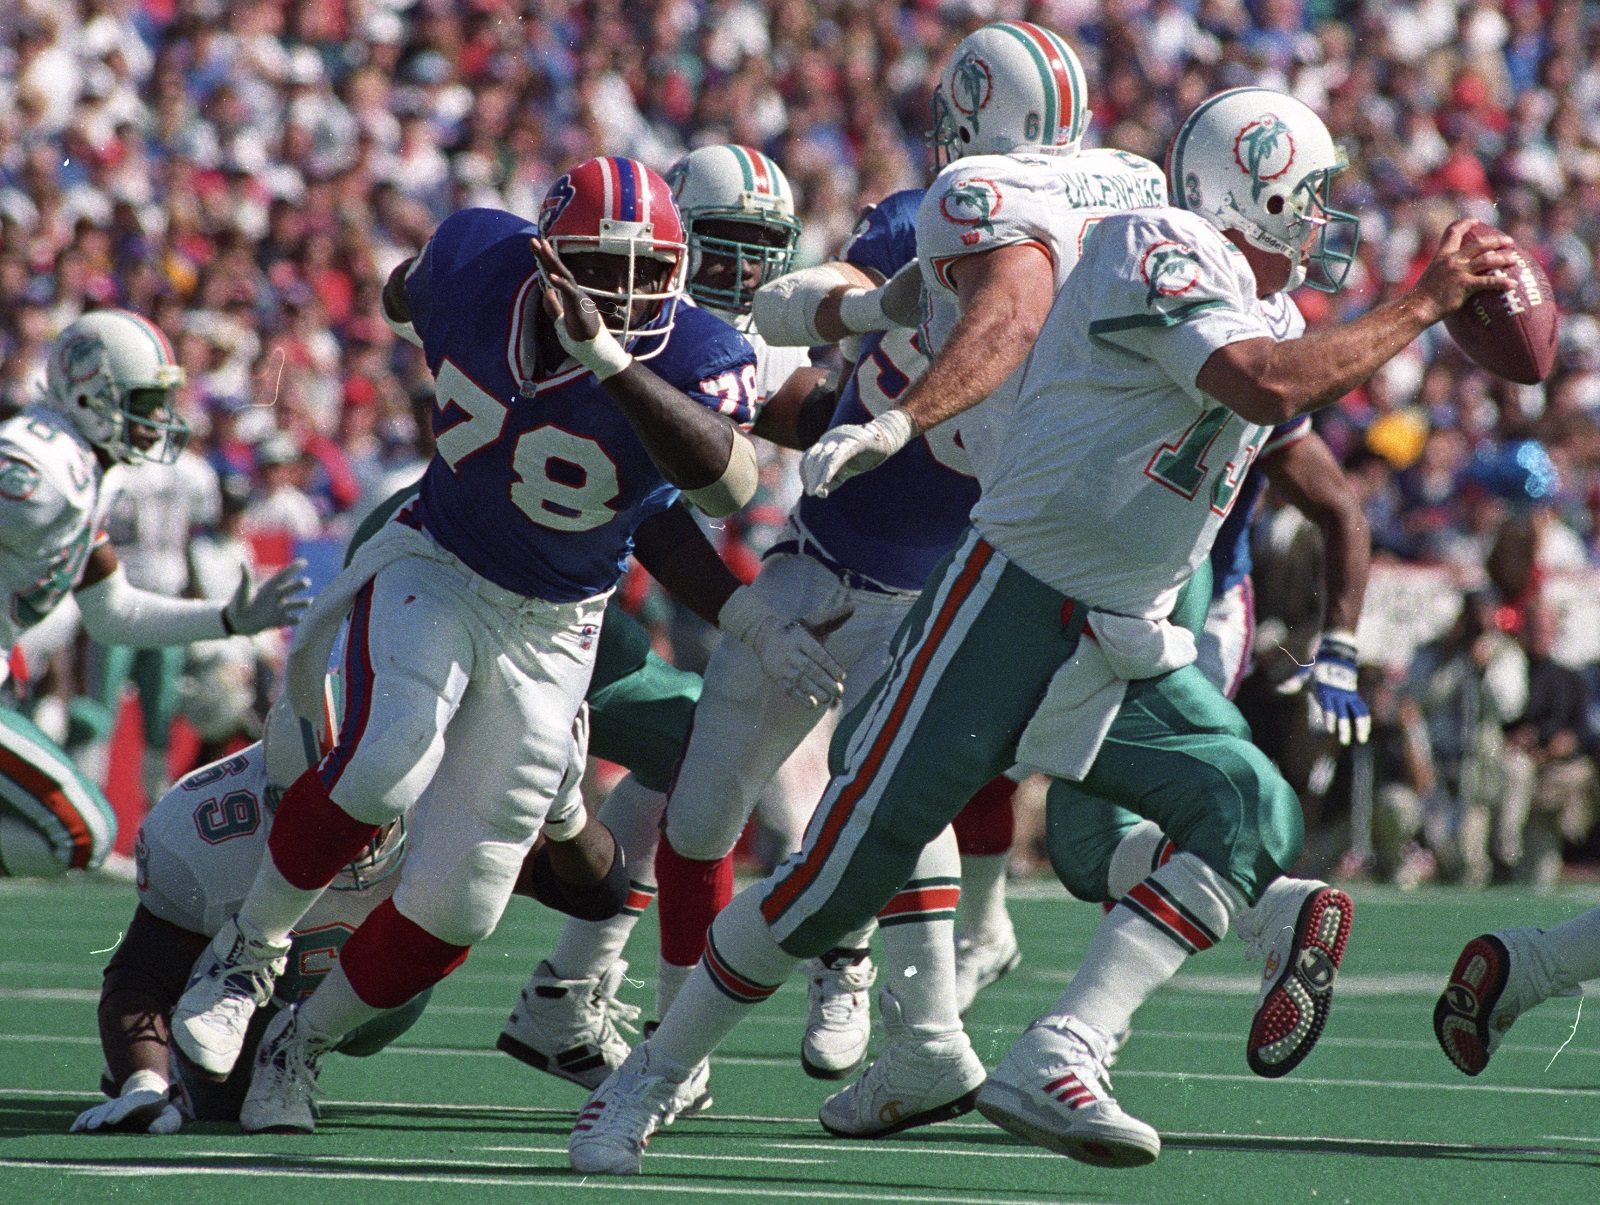 'Bruce Smith: A Football Life' to air Nov. 29 on NFL Network